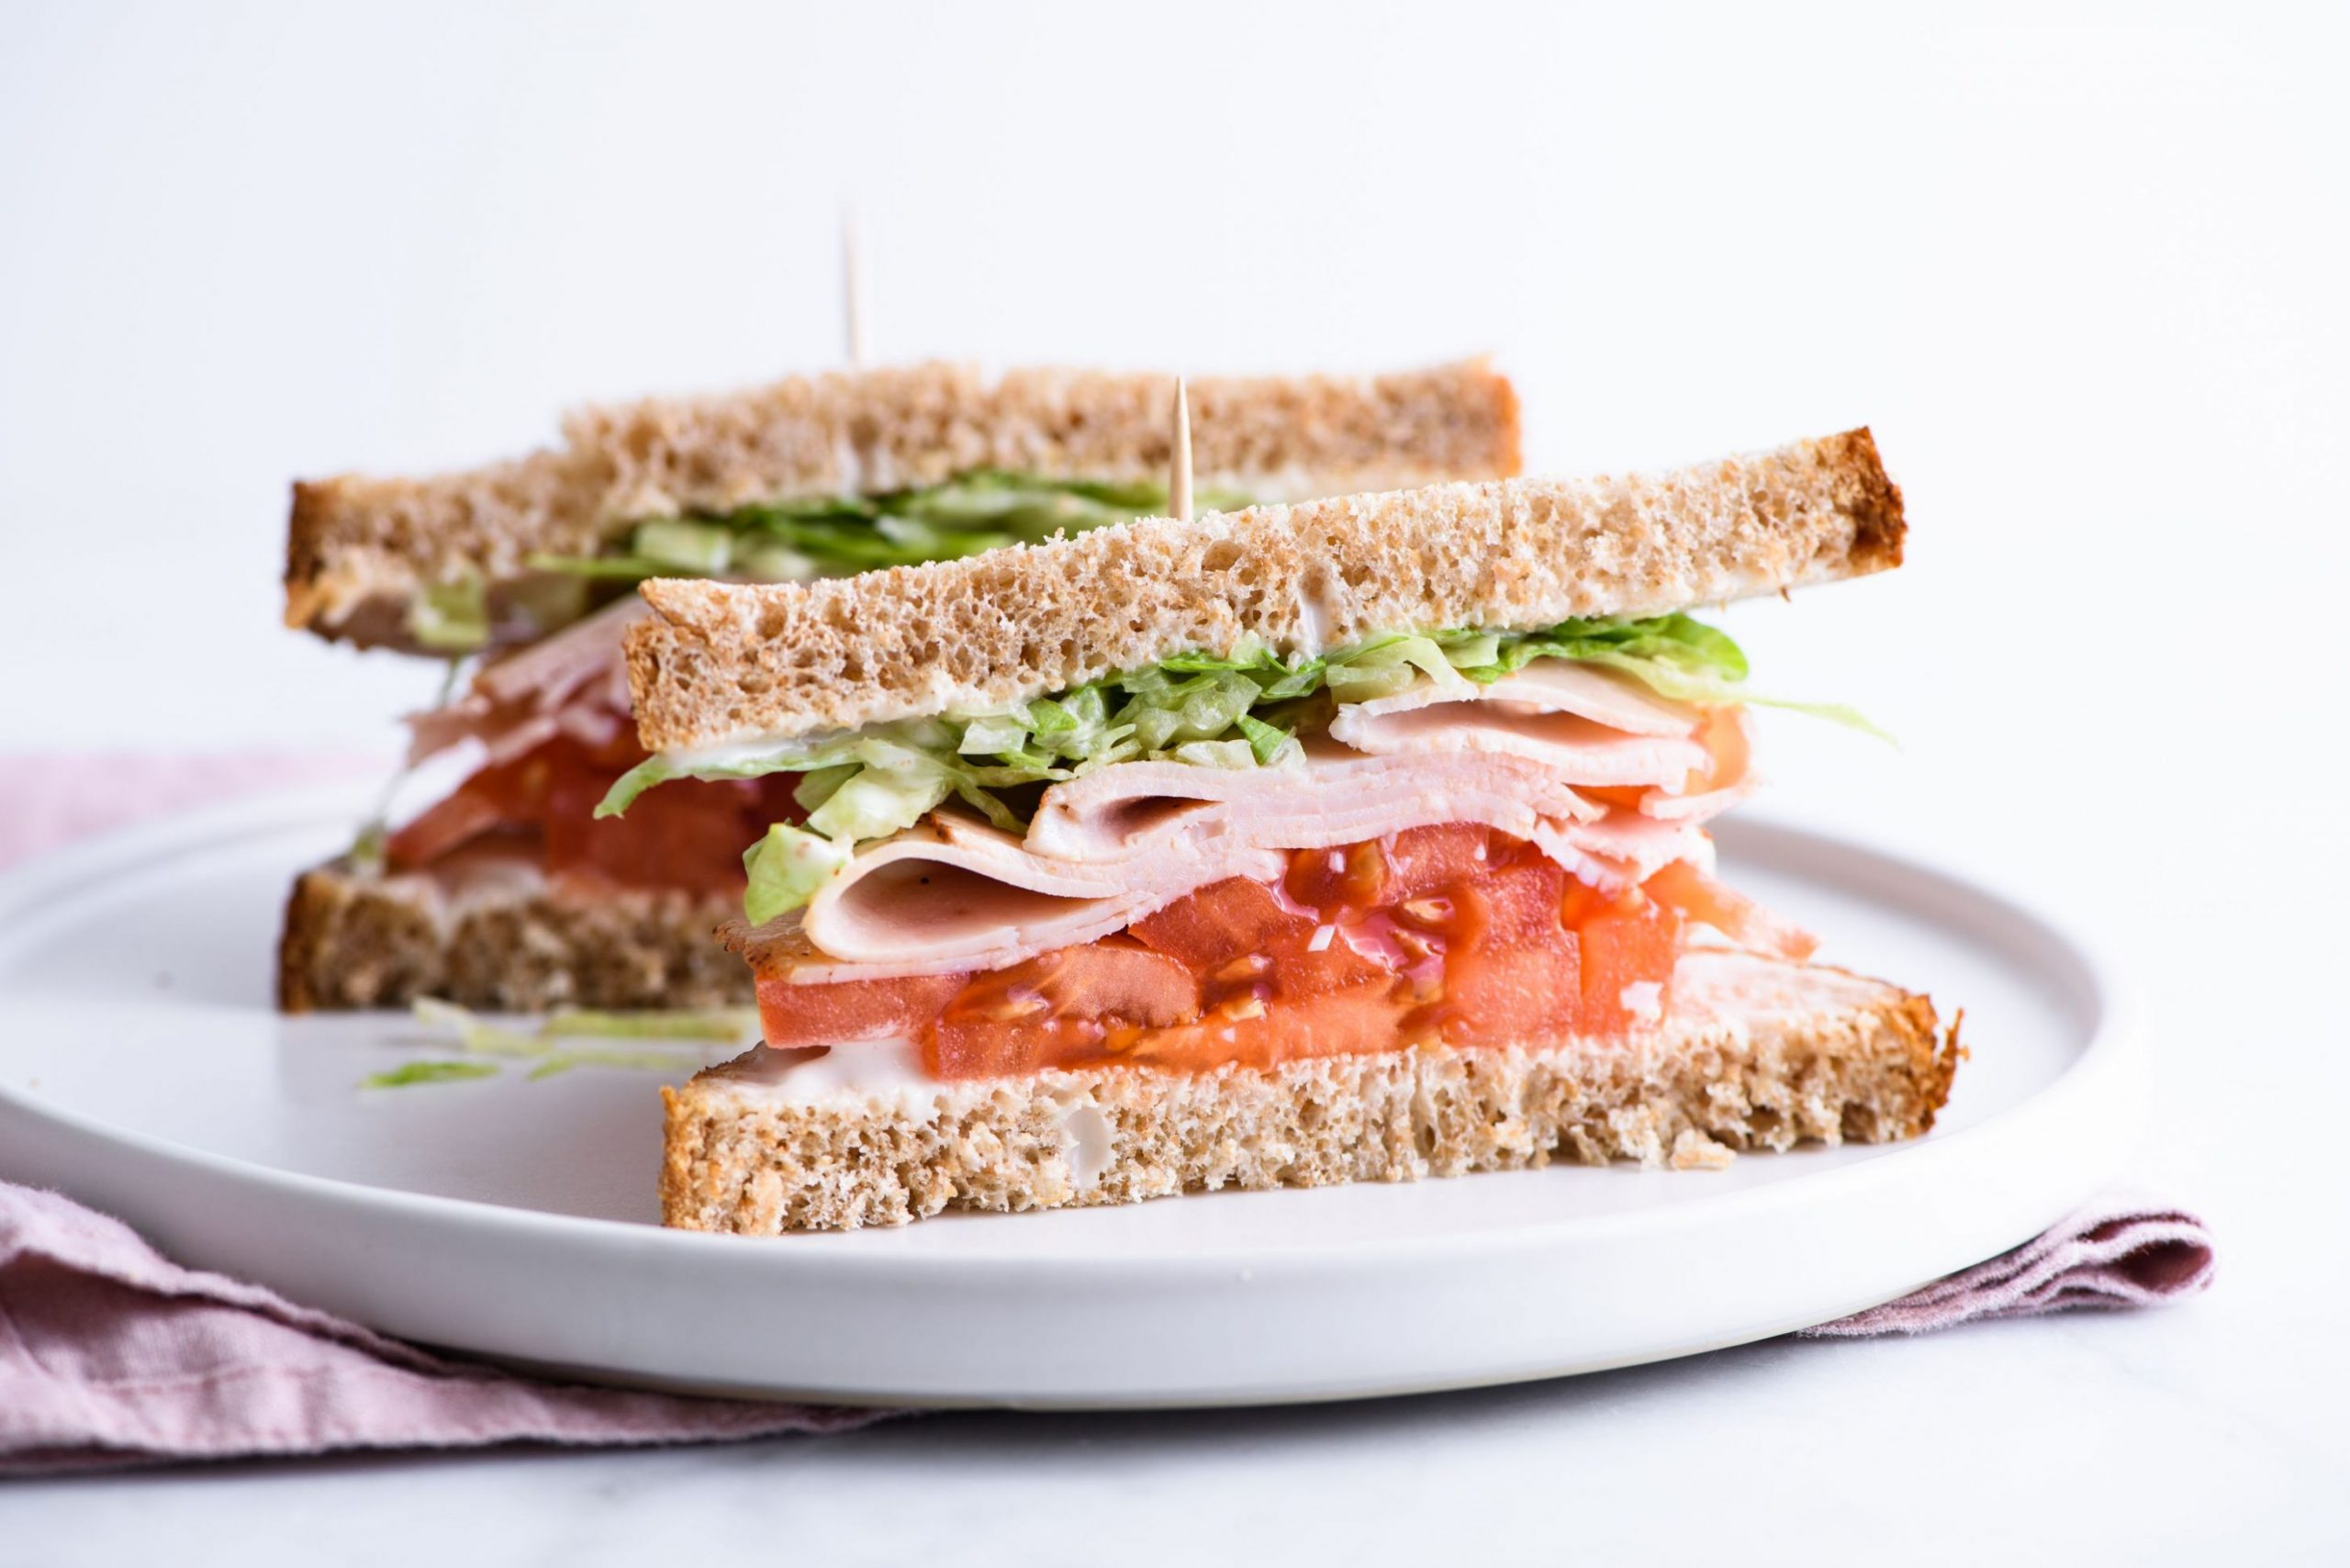 Sandwich Nutrition Facts and Health Benefits - Sandwich Recipes With Nutritional Value